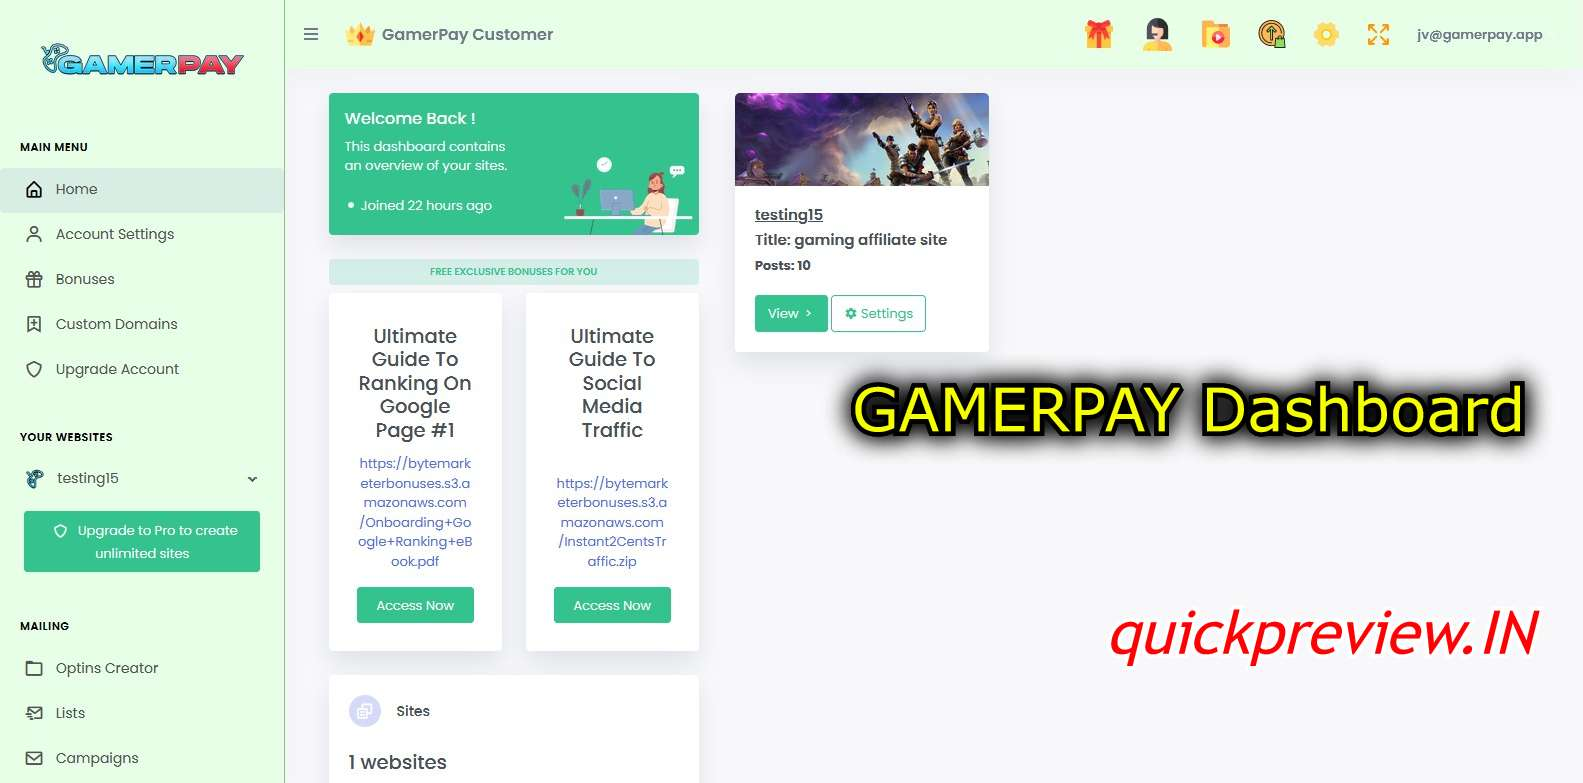 gamerpay dashboard